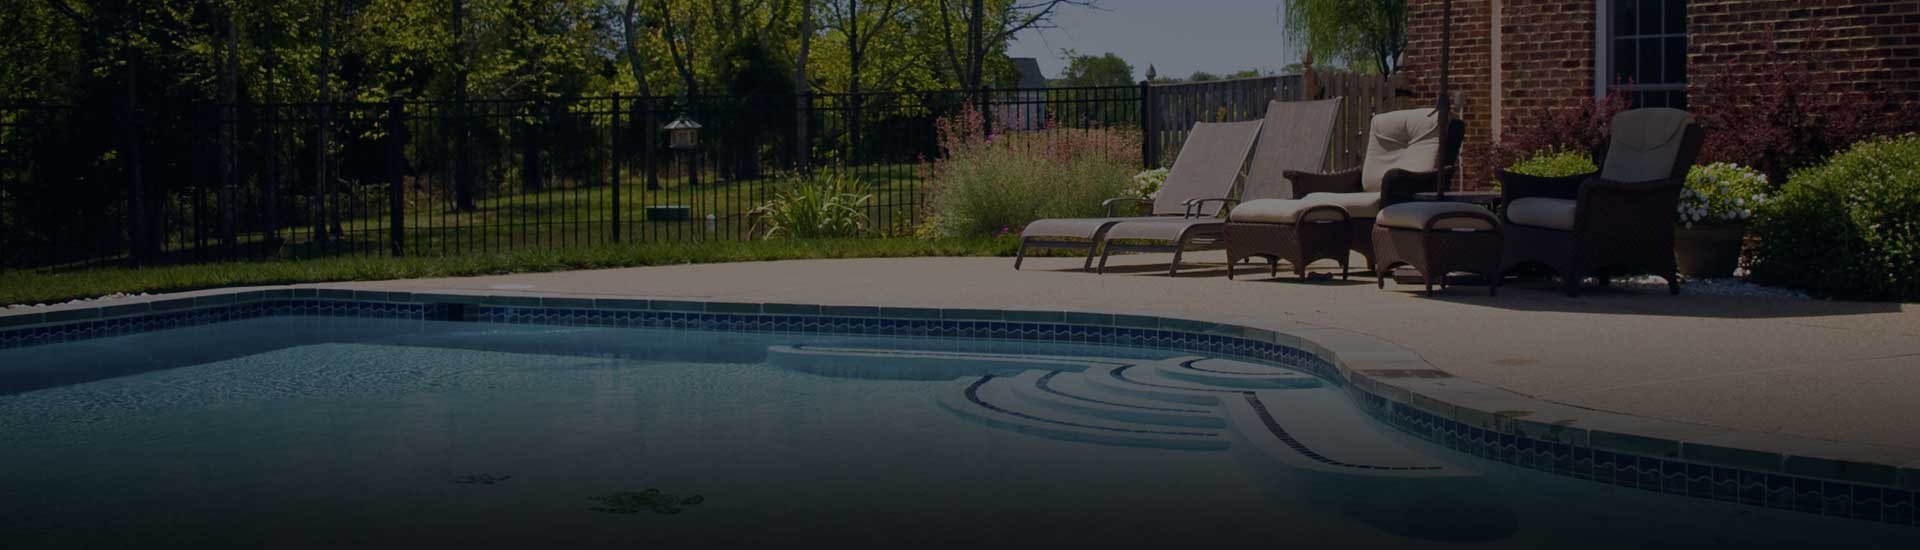 Pool Deck Leveling